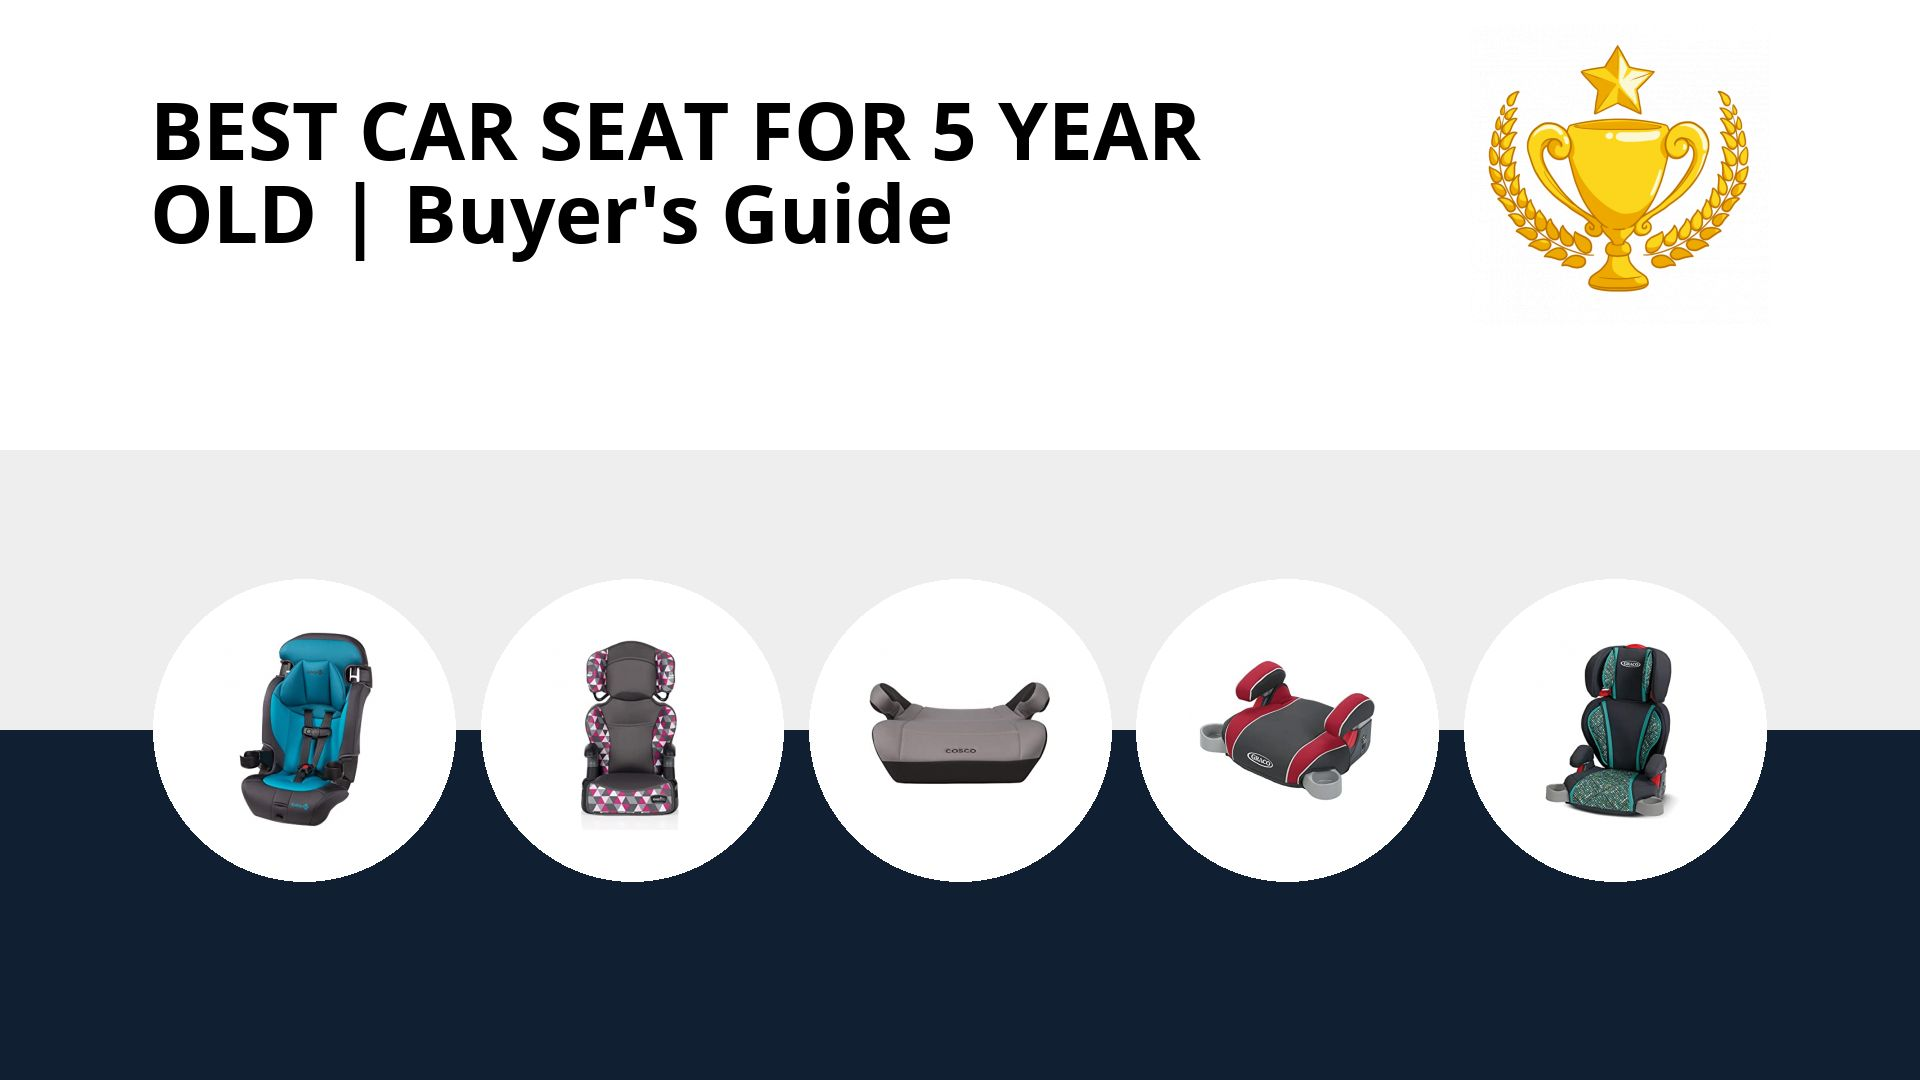 Best Car Seat For 5 Year Old: image